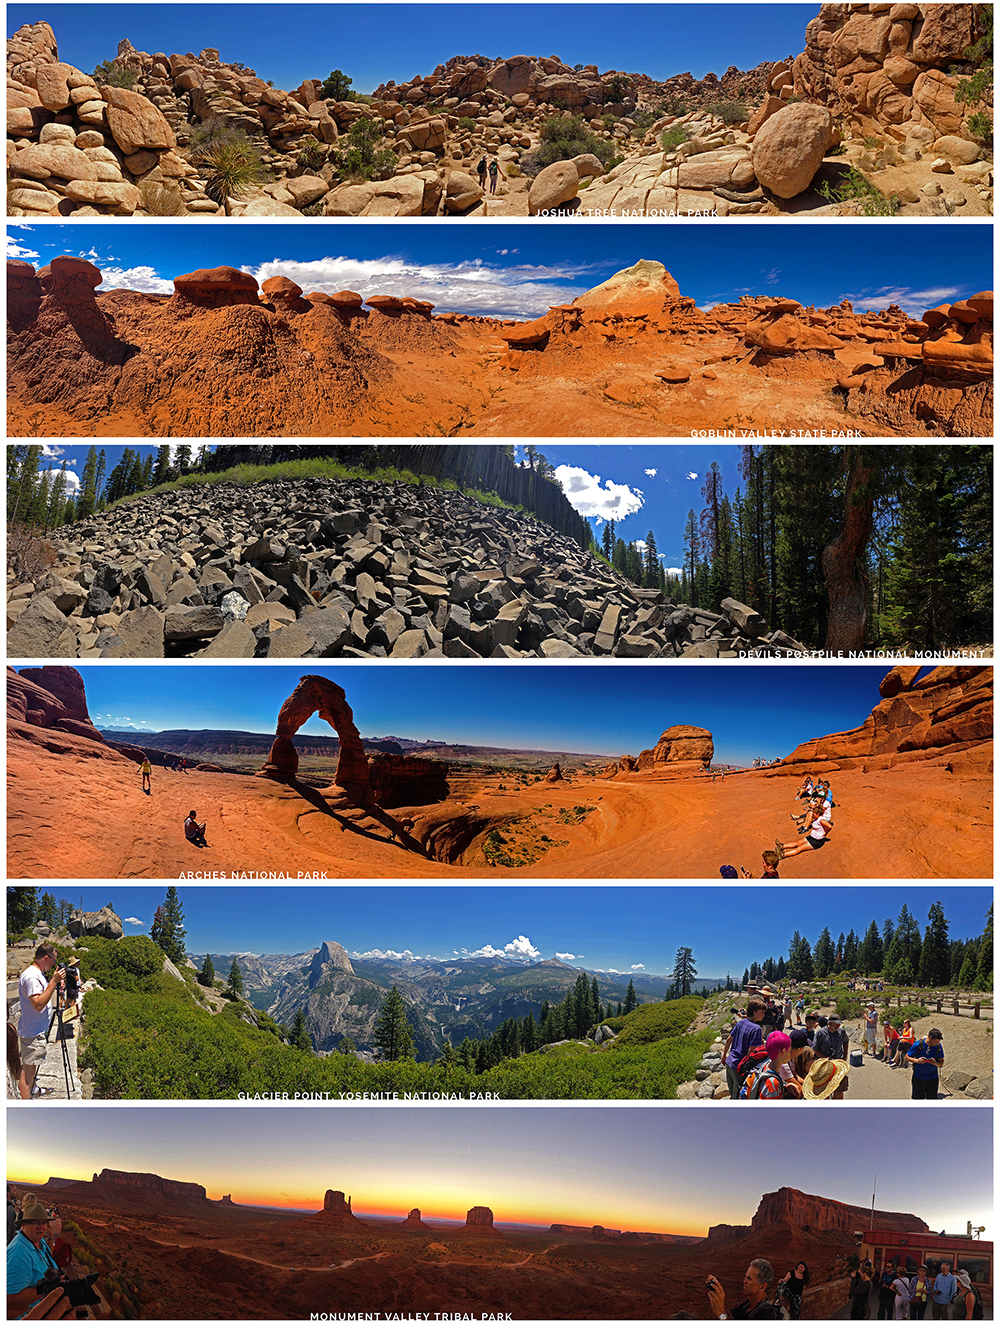 American Southwest 2014 Panorama Poster_02_2